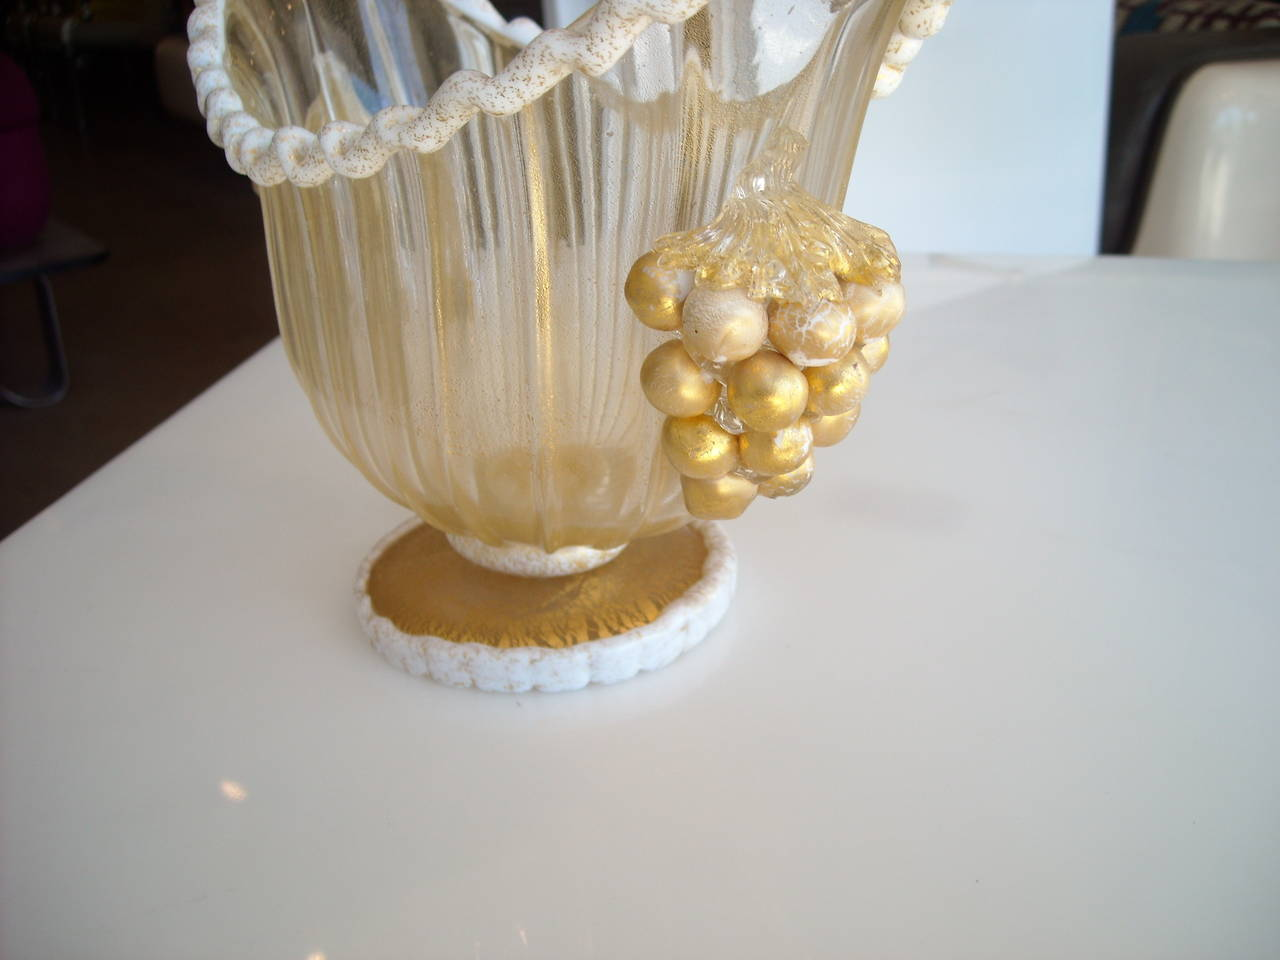 Ercole barovier murano glass and gold centerpiece for